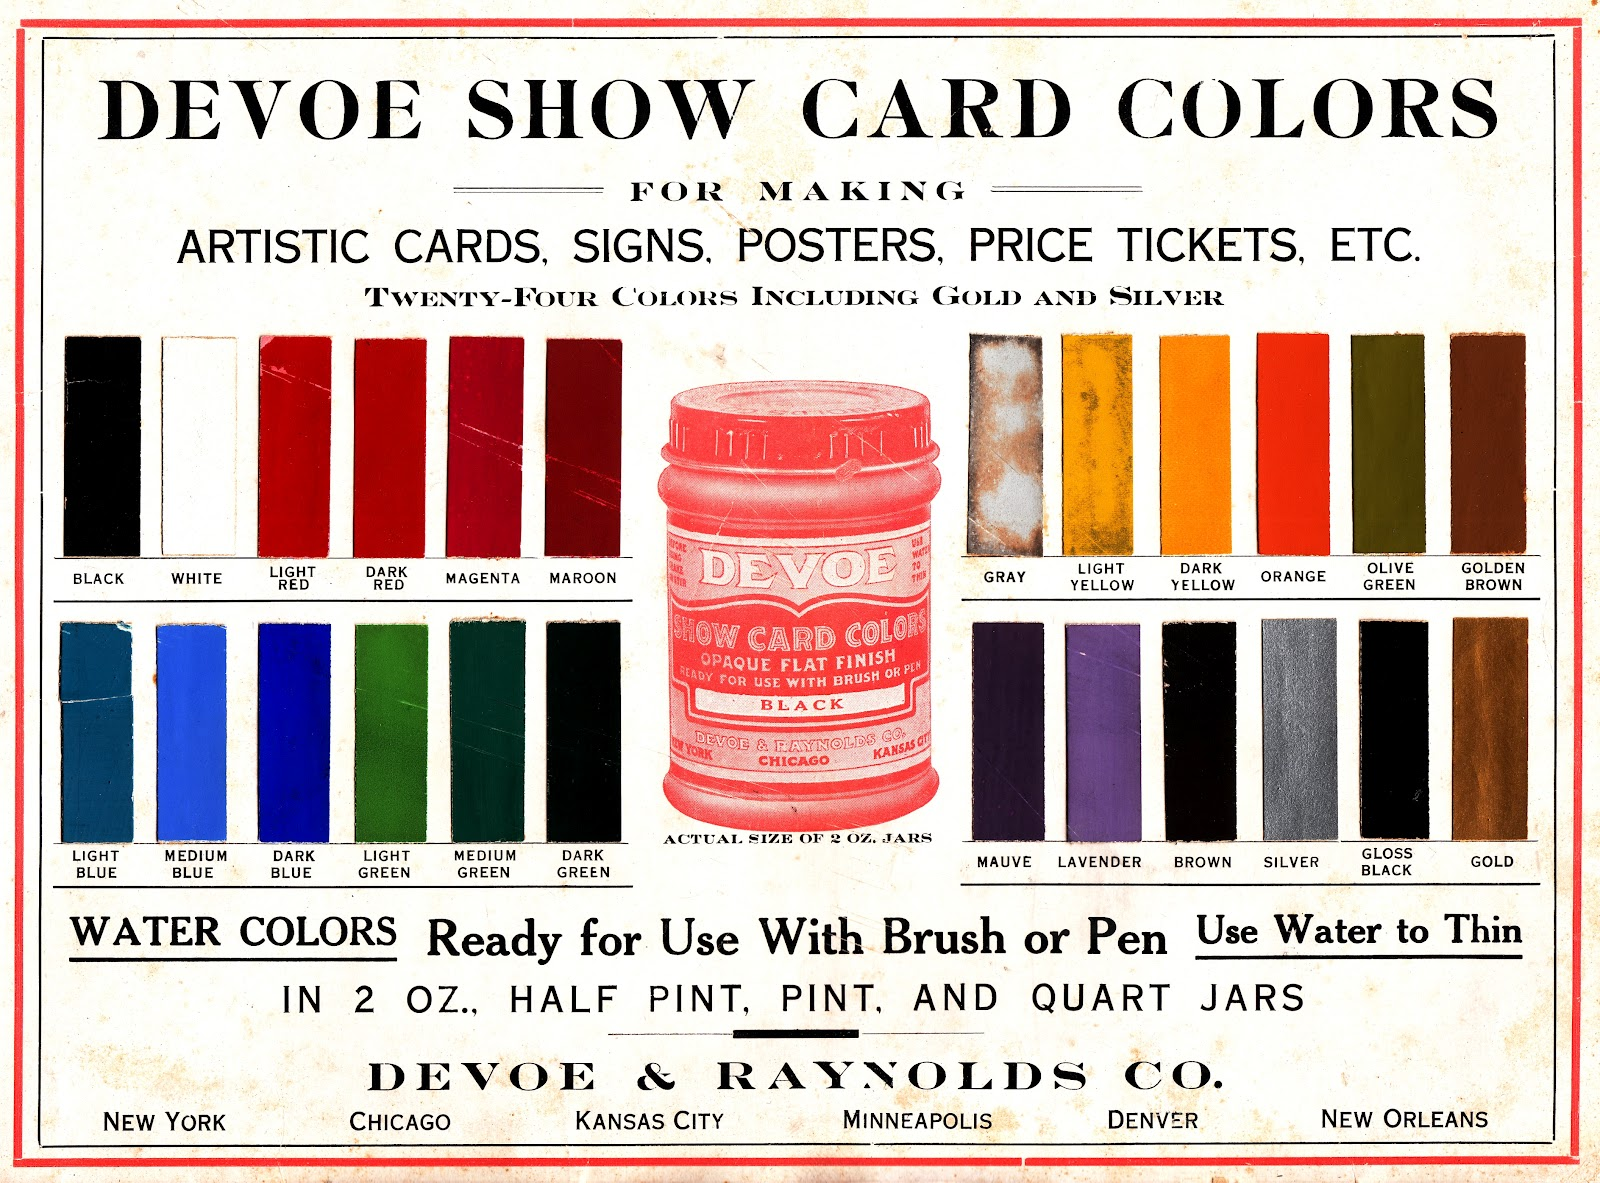 93 Best Color Systems Images On Pinterest | Color Theory, Braces